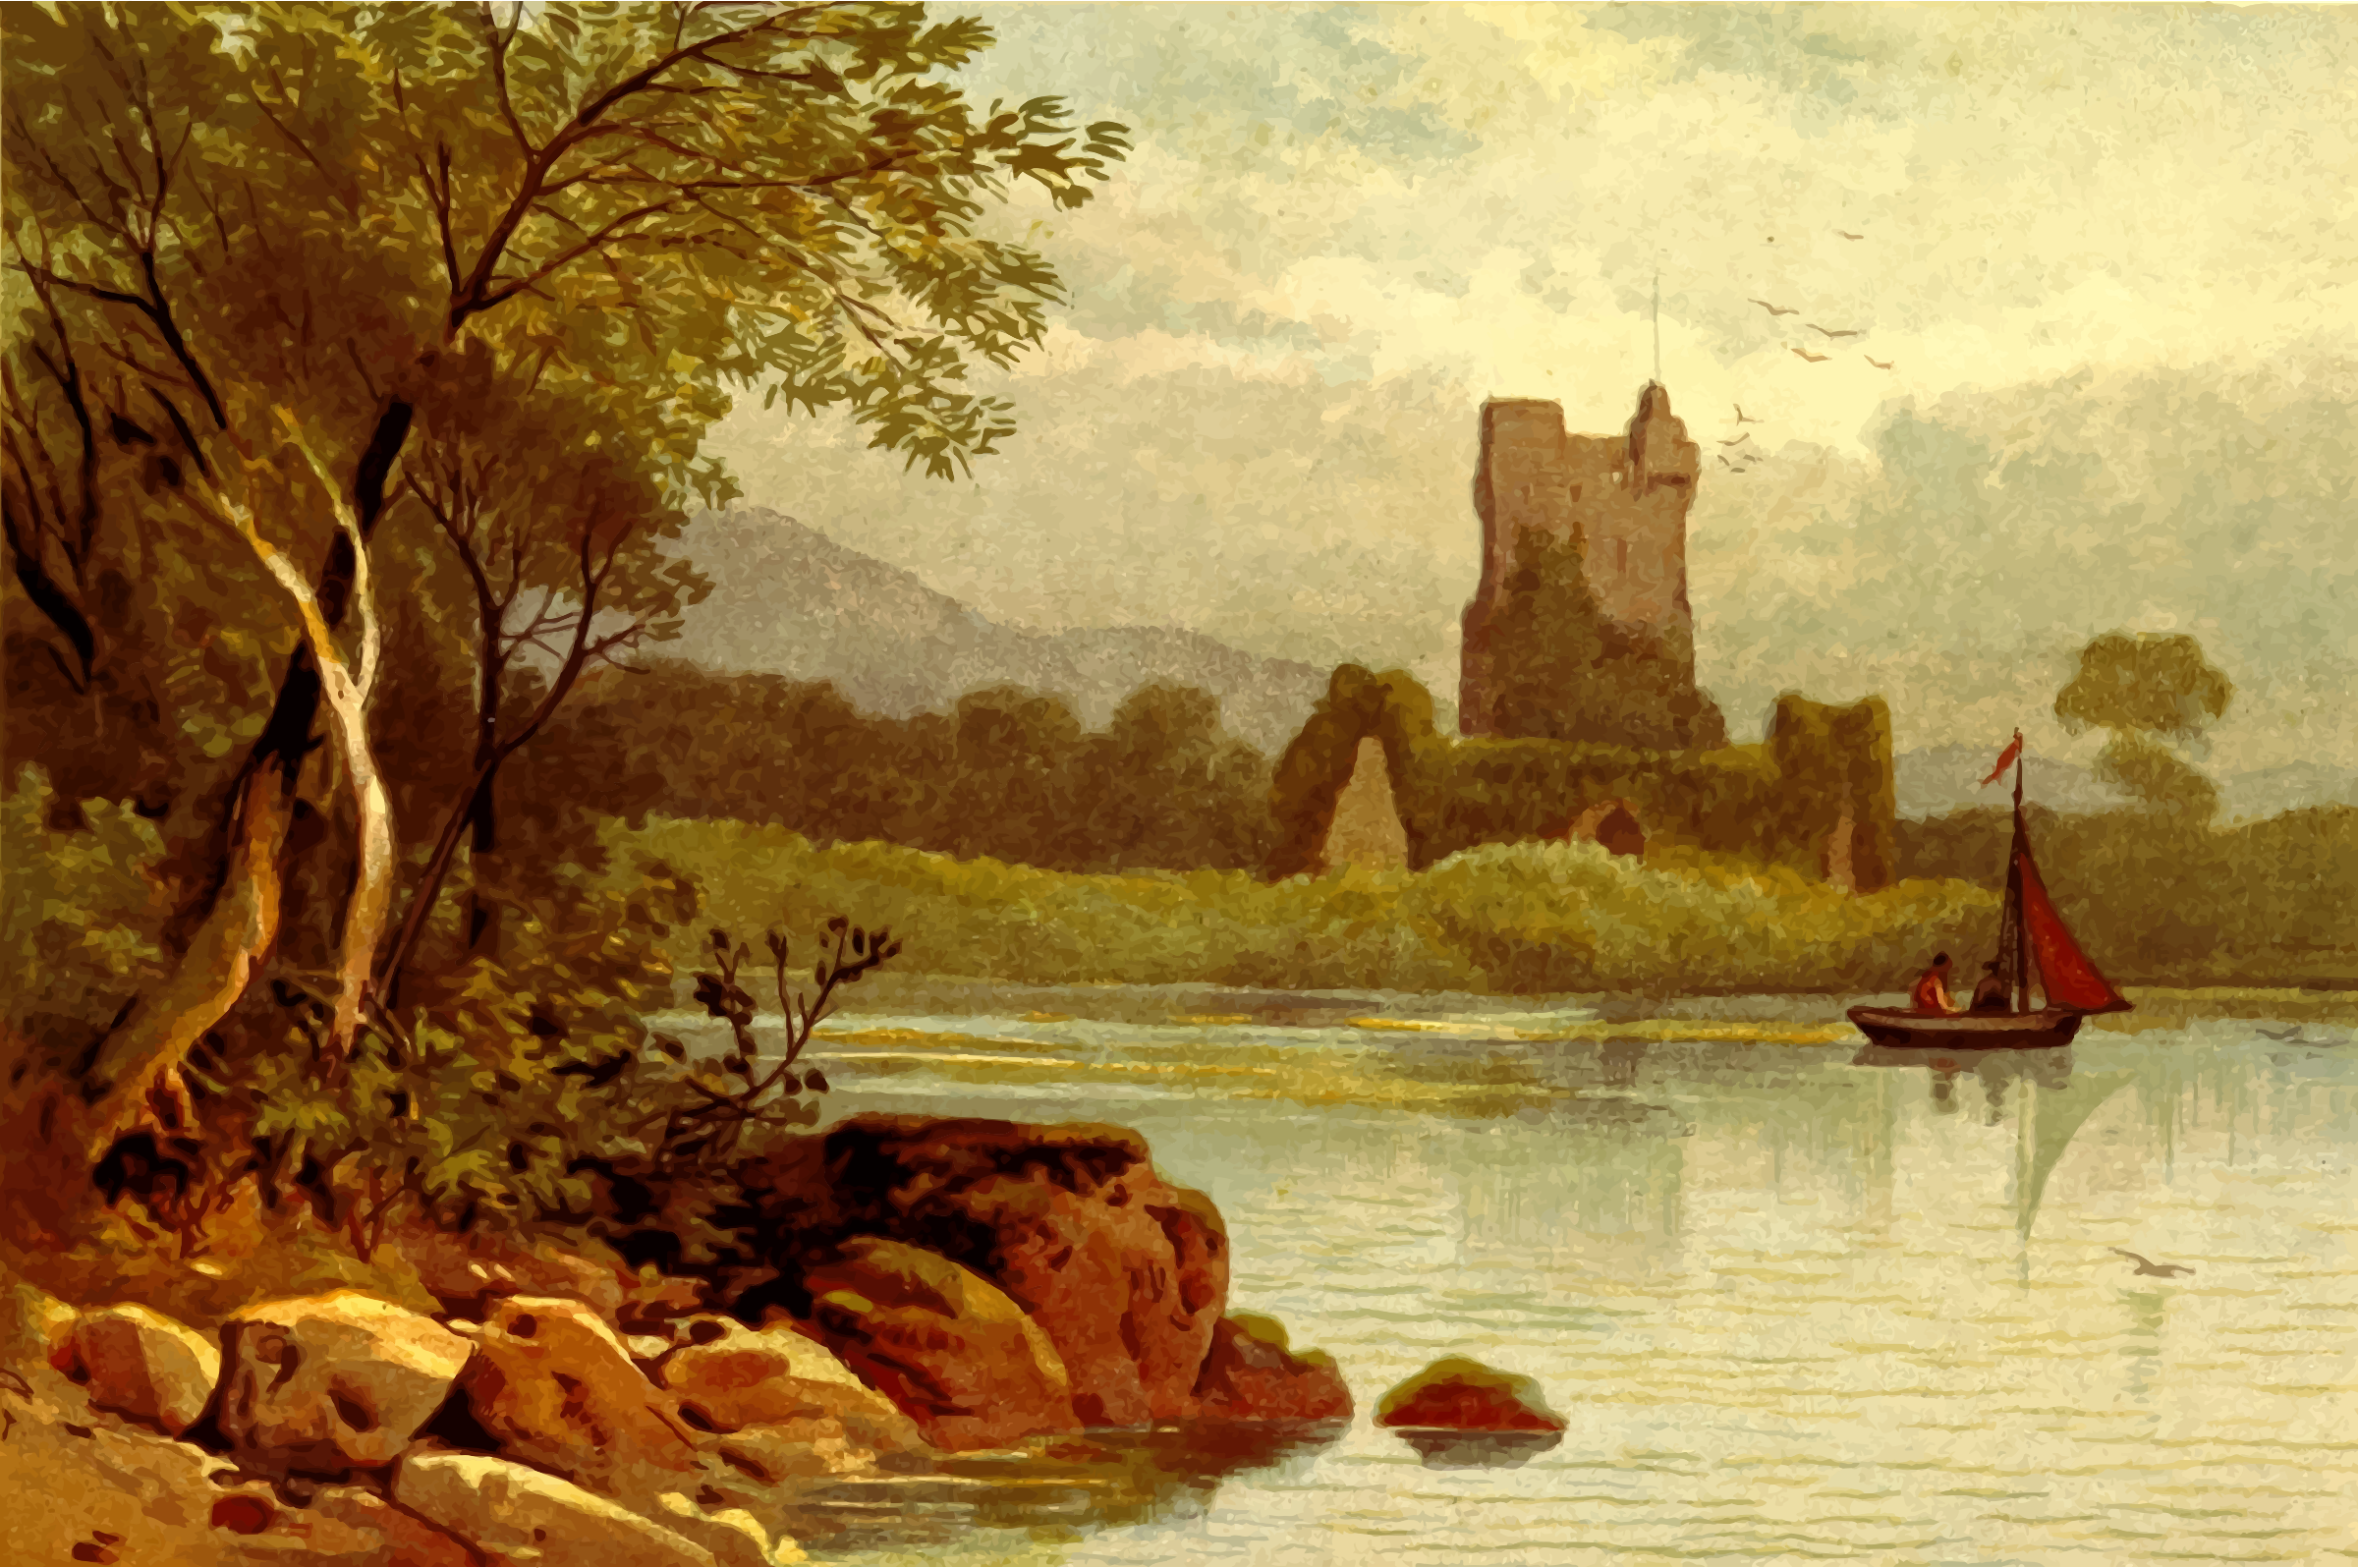 Ross Castle by Firkin